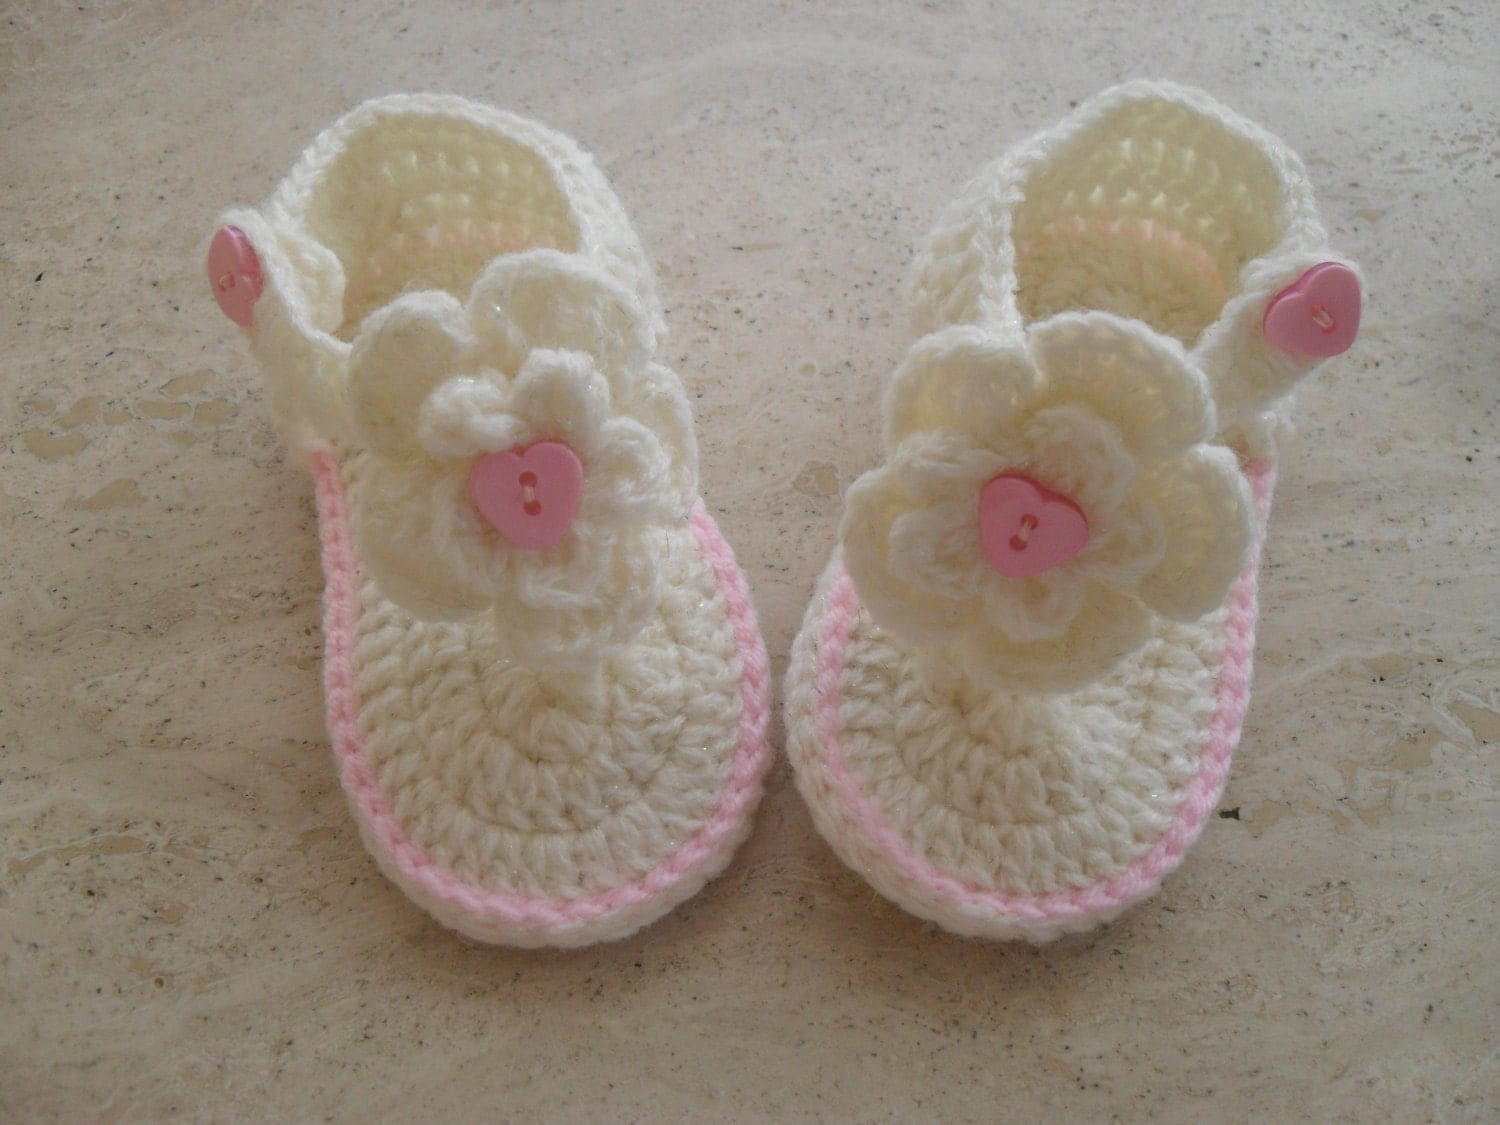 Baby Gladiator Style Flip Flops size months CrochetCreations4You. 5 out of 5 stars (53) $ Favorite Add to See similar items + More like this. Baby Gladiator Style Flip Flops size months CrochetCreations4You. 5 out of 5 stars (53) $ Favorite Add to See.